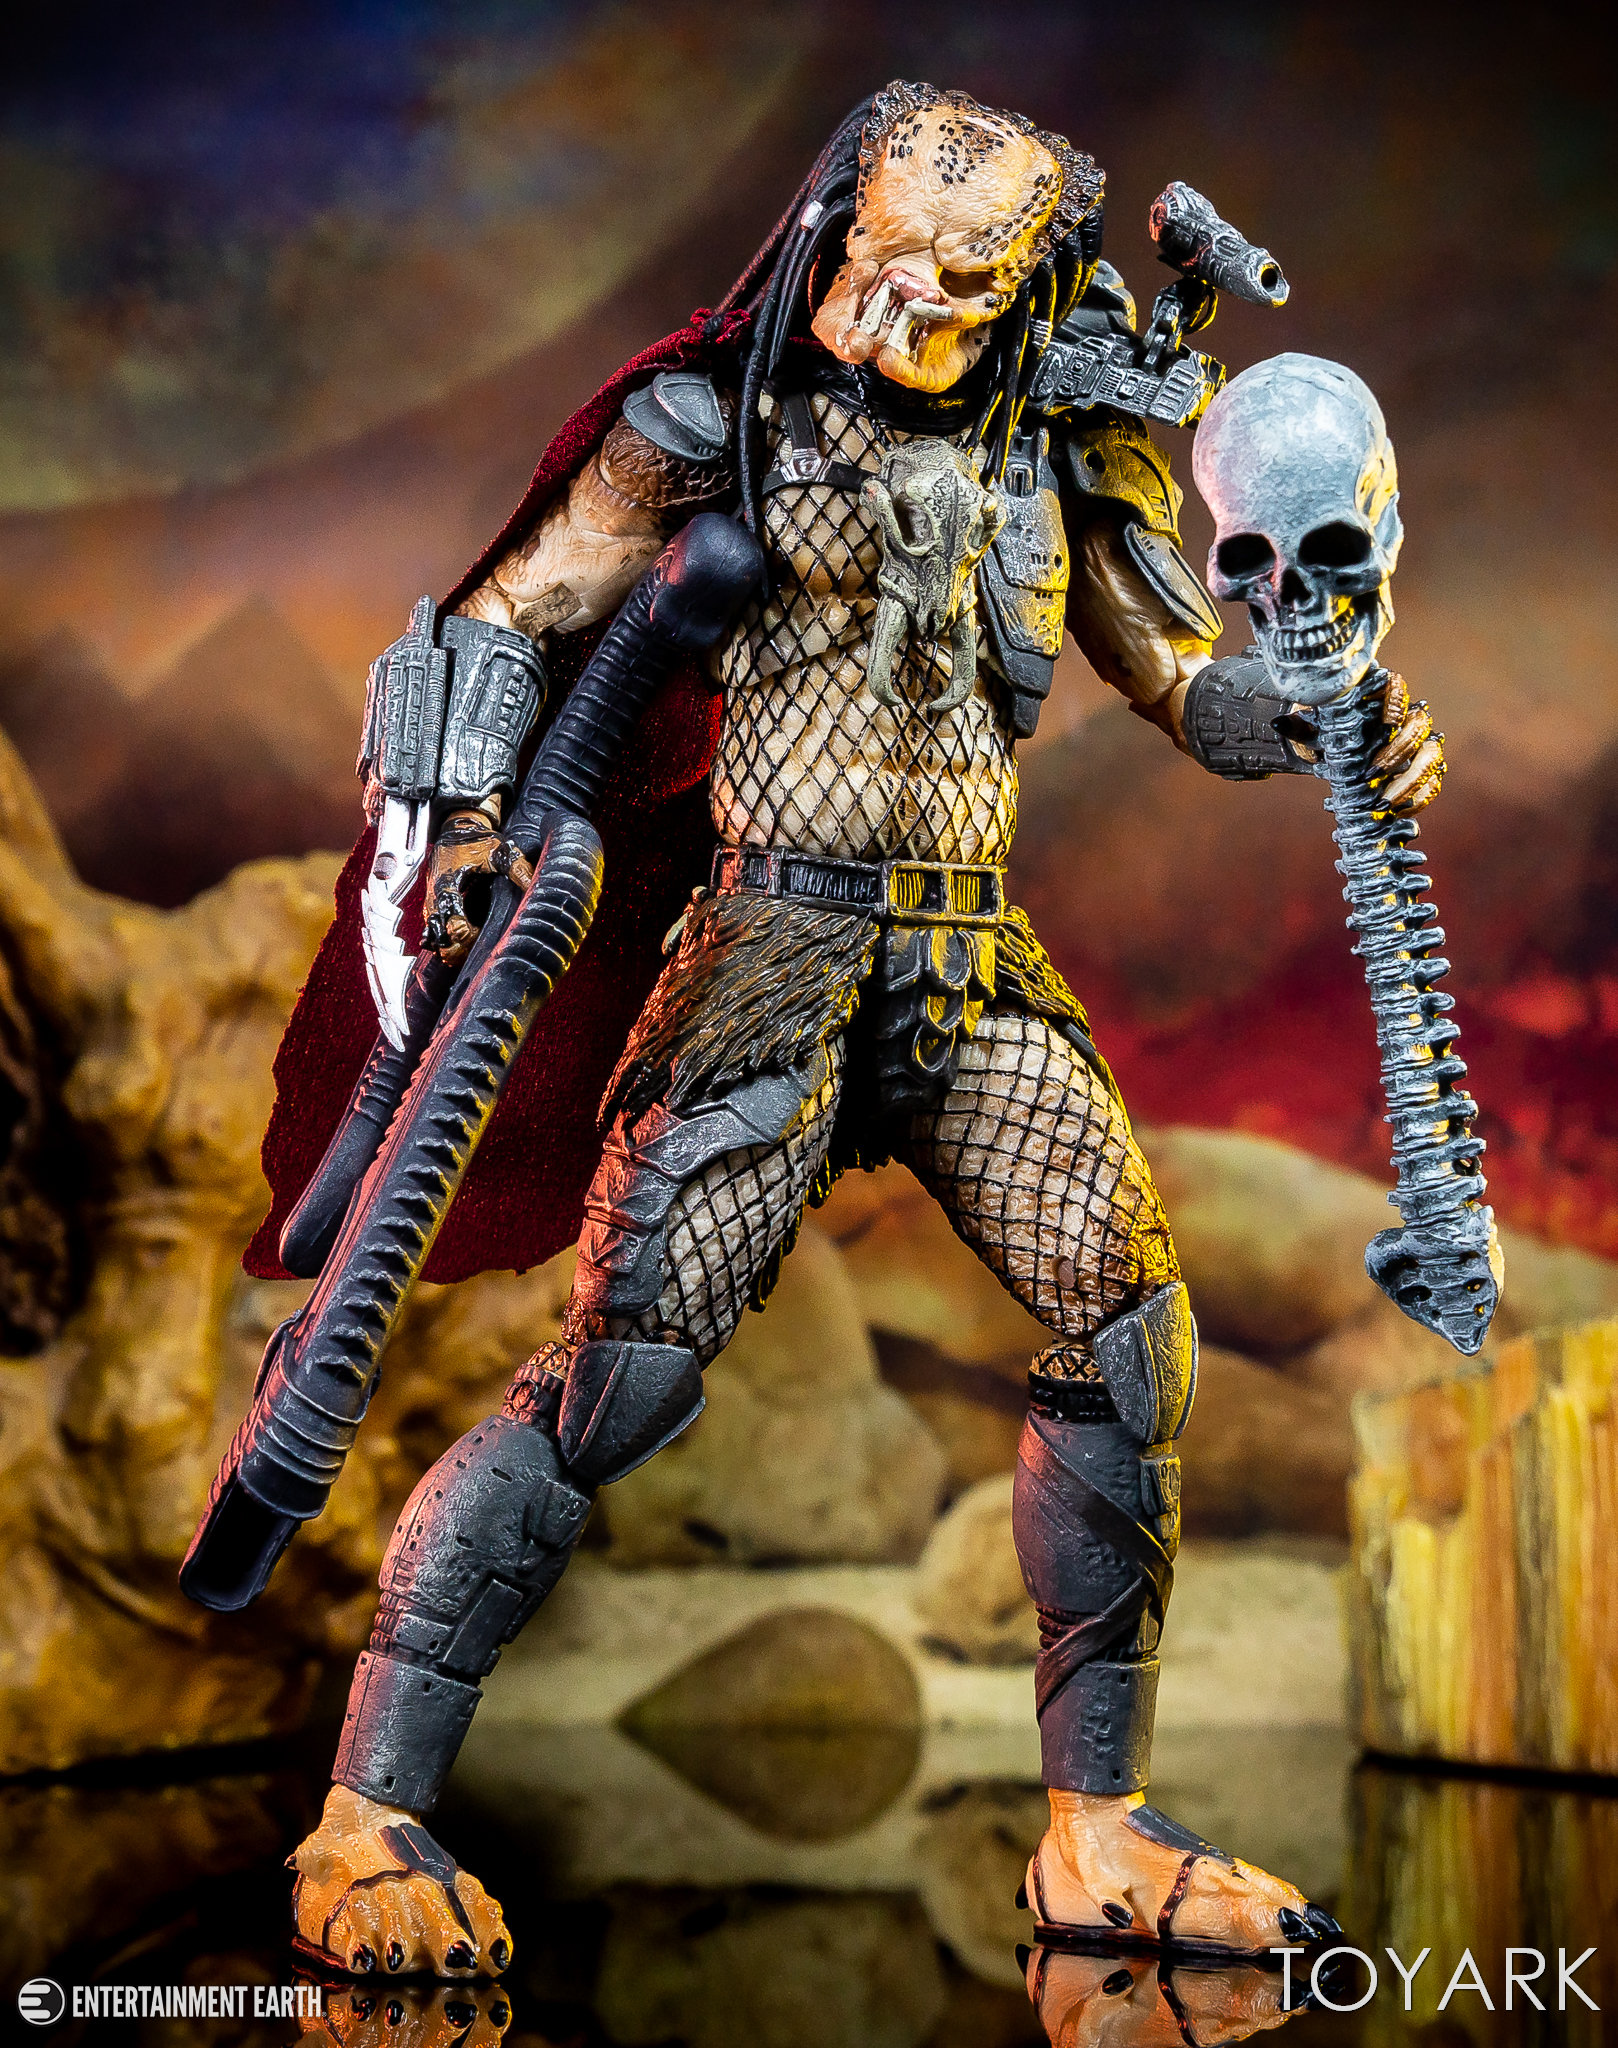 https://news.toyark.com/wp-content/uploads/sites/4/2018/11/NECA-Ultimate-Ahab-Predator-018.jpg